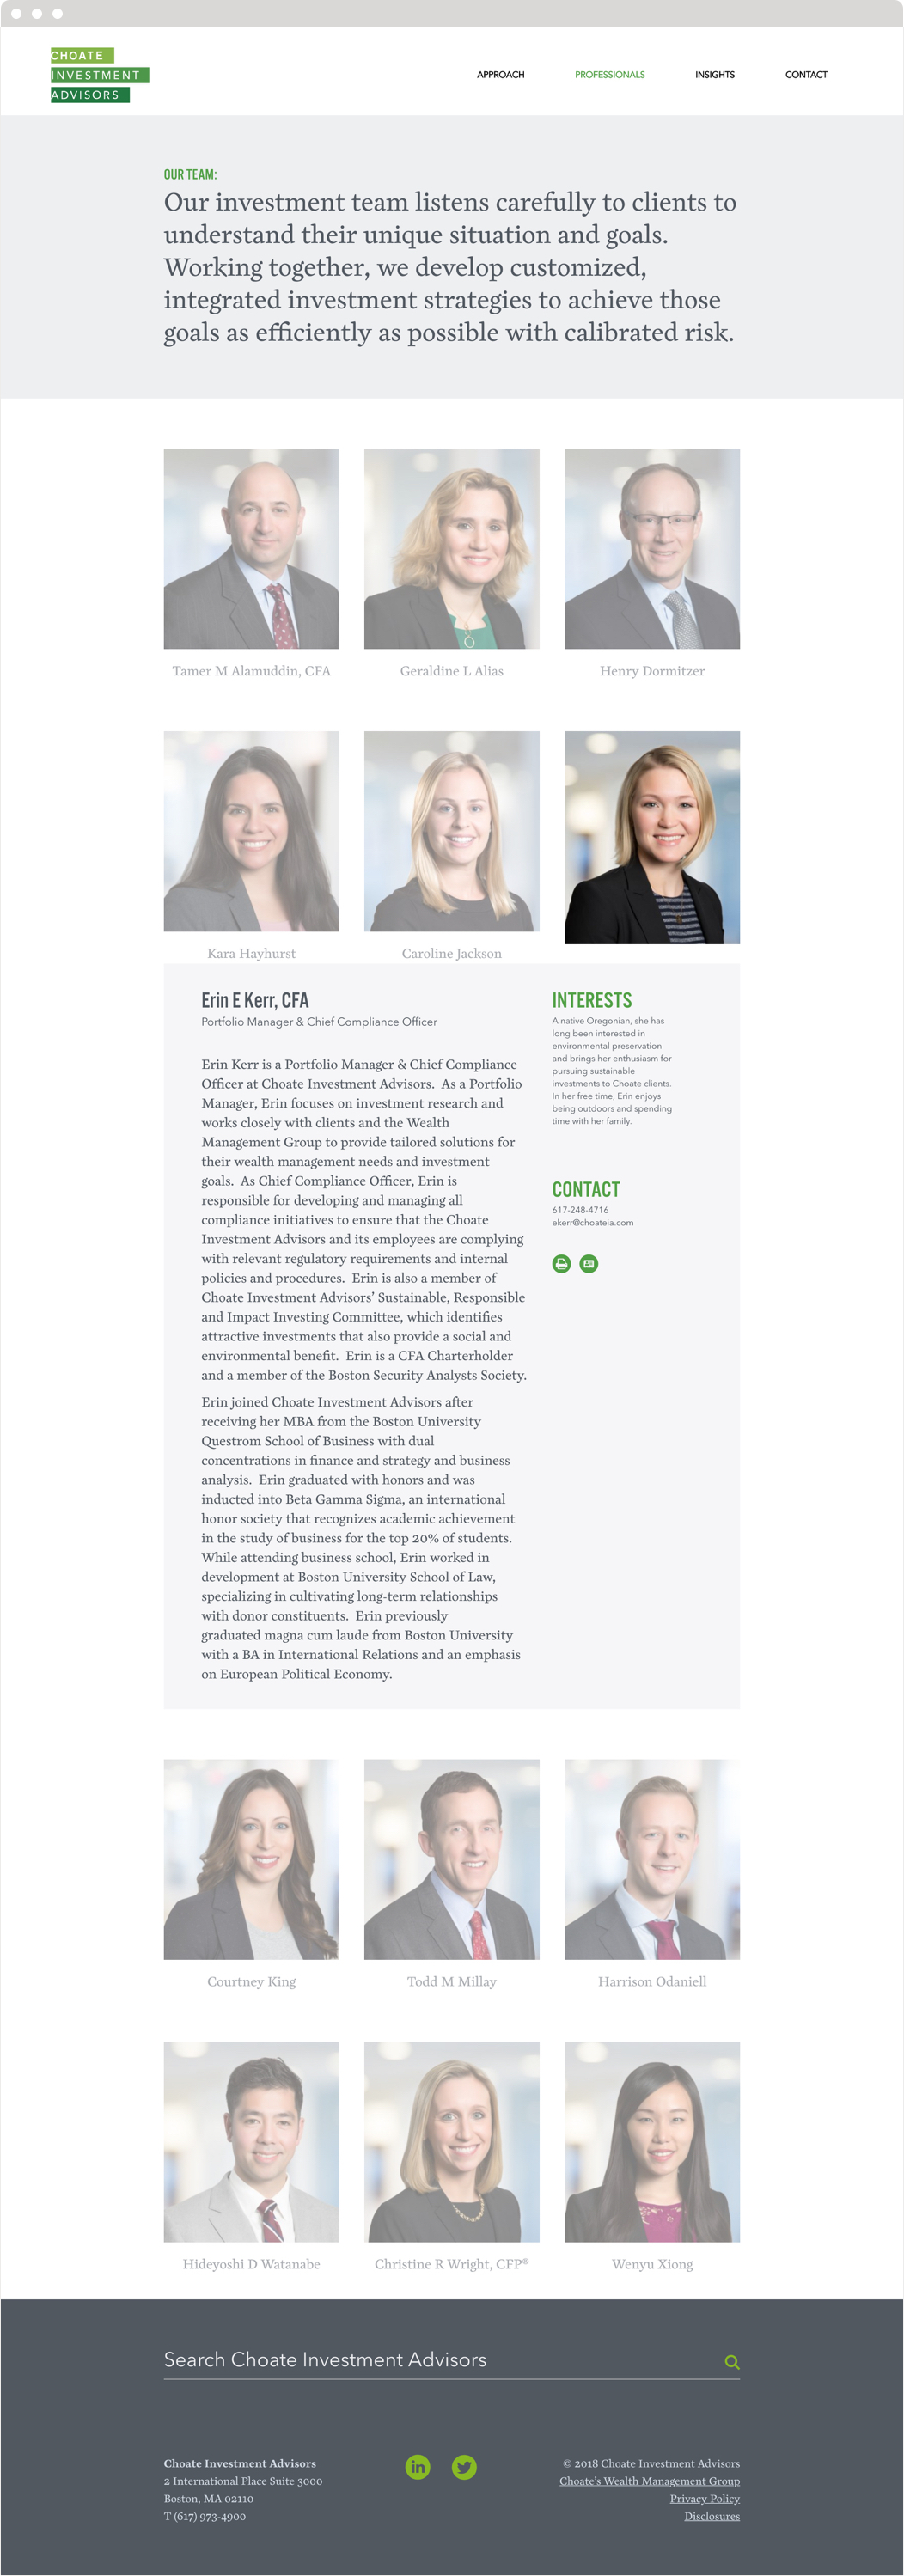 The professionals section of Choate Investment Advisors website, showing headshots and bios of the firm's lawyers.